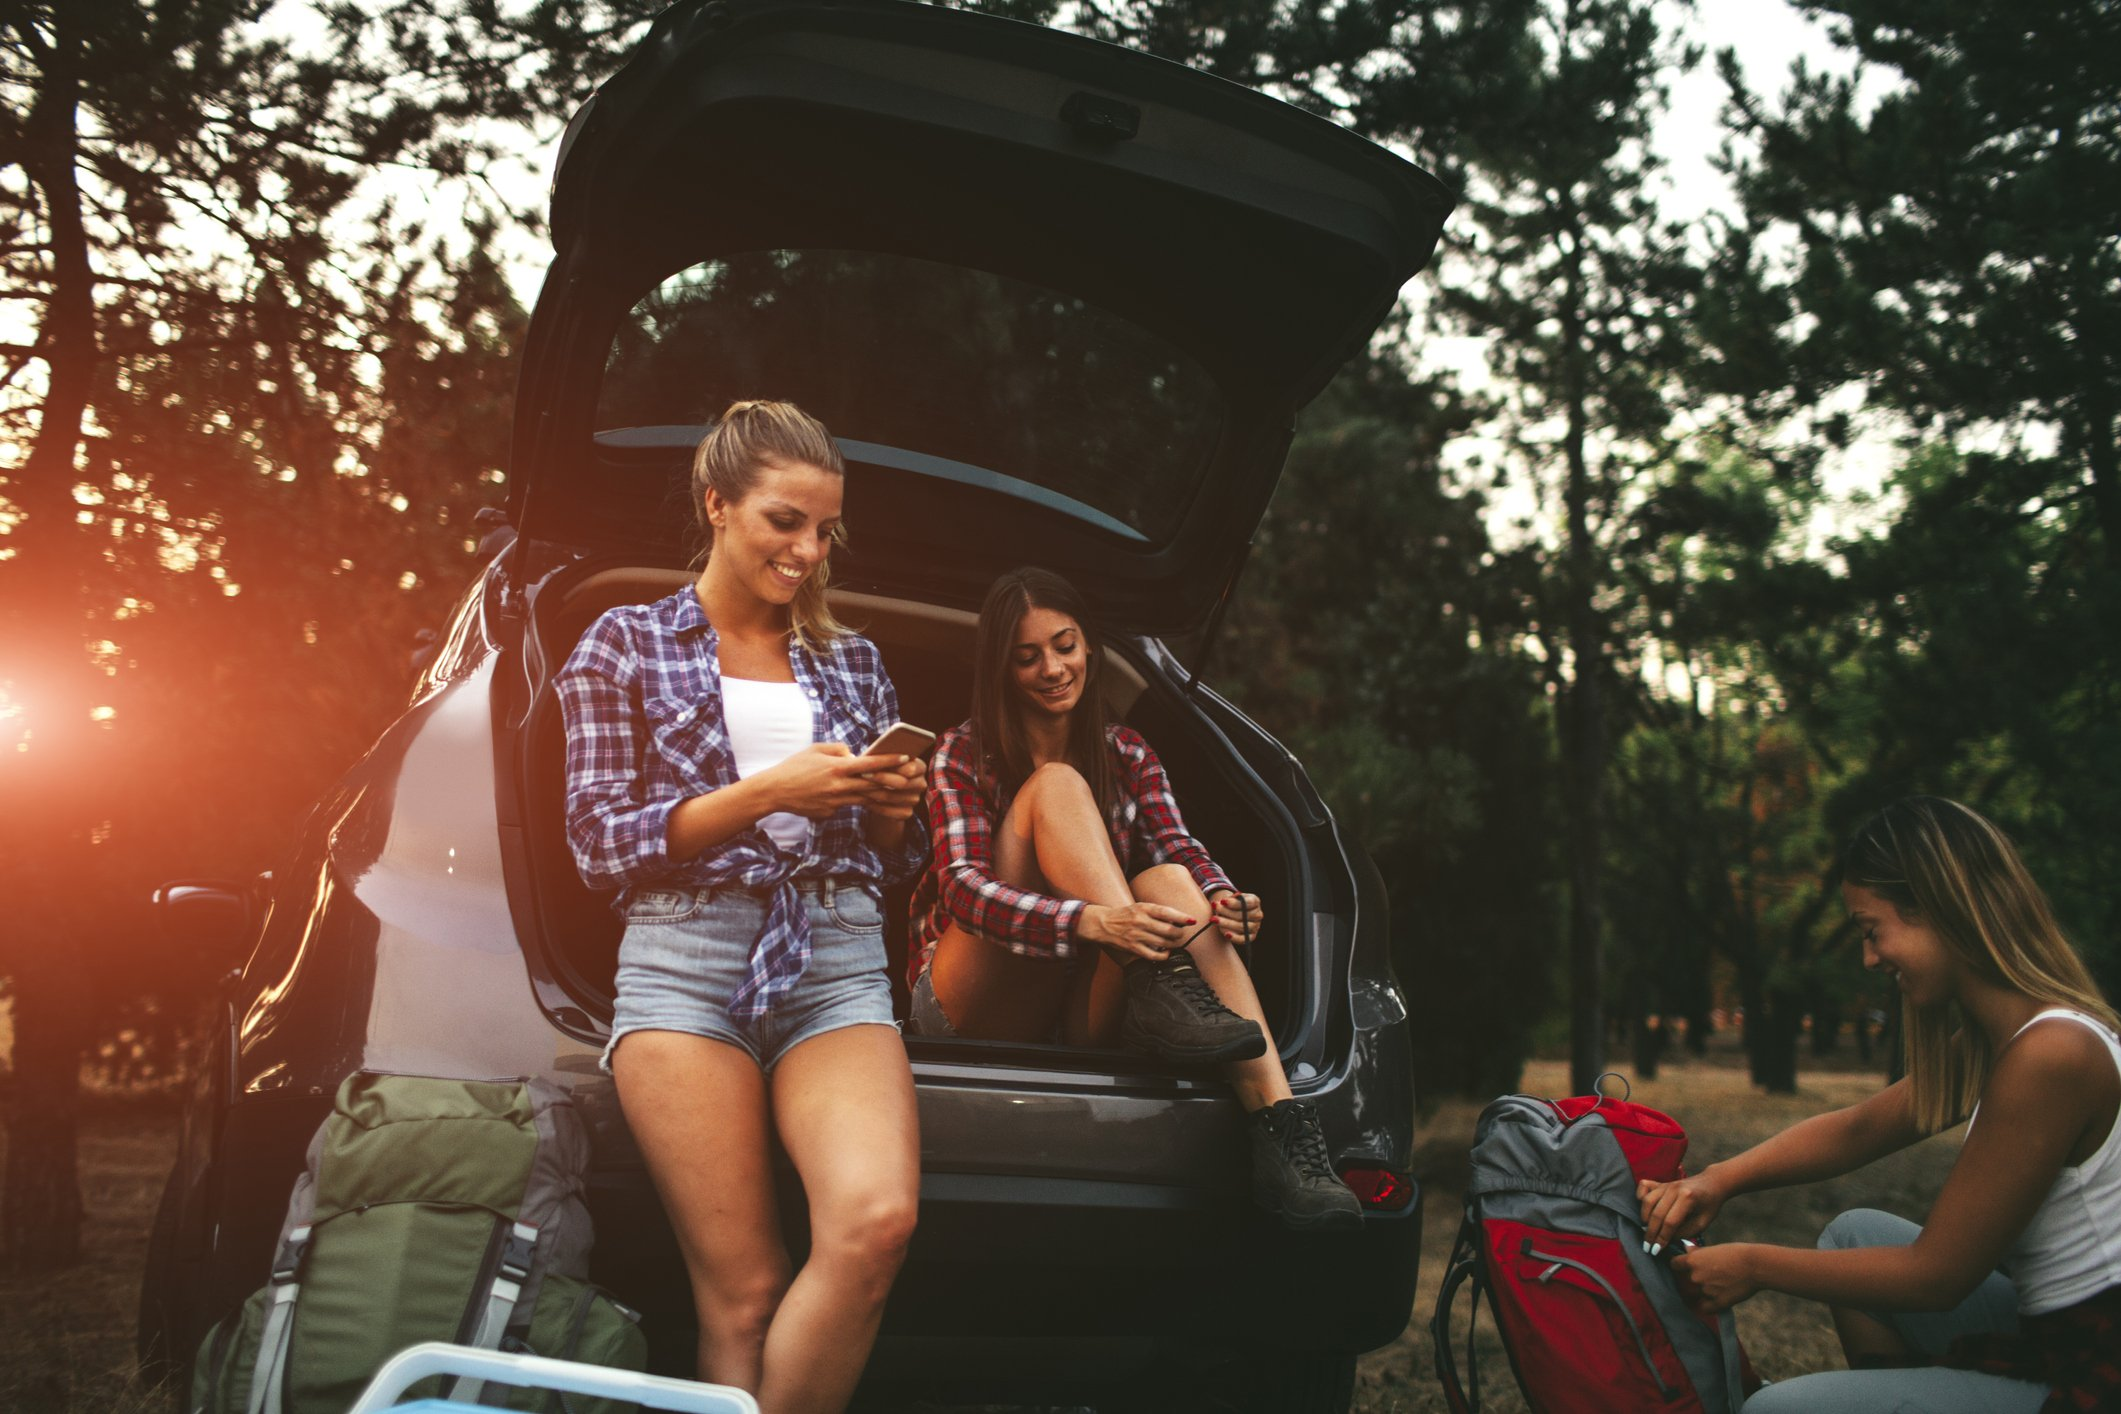 The Don'ts of Free Camping